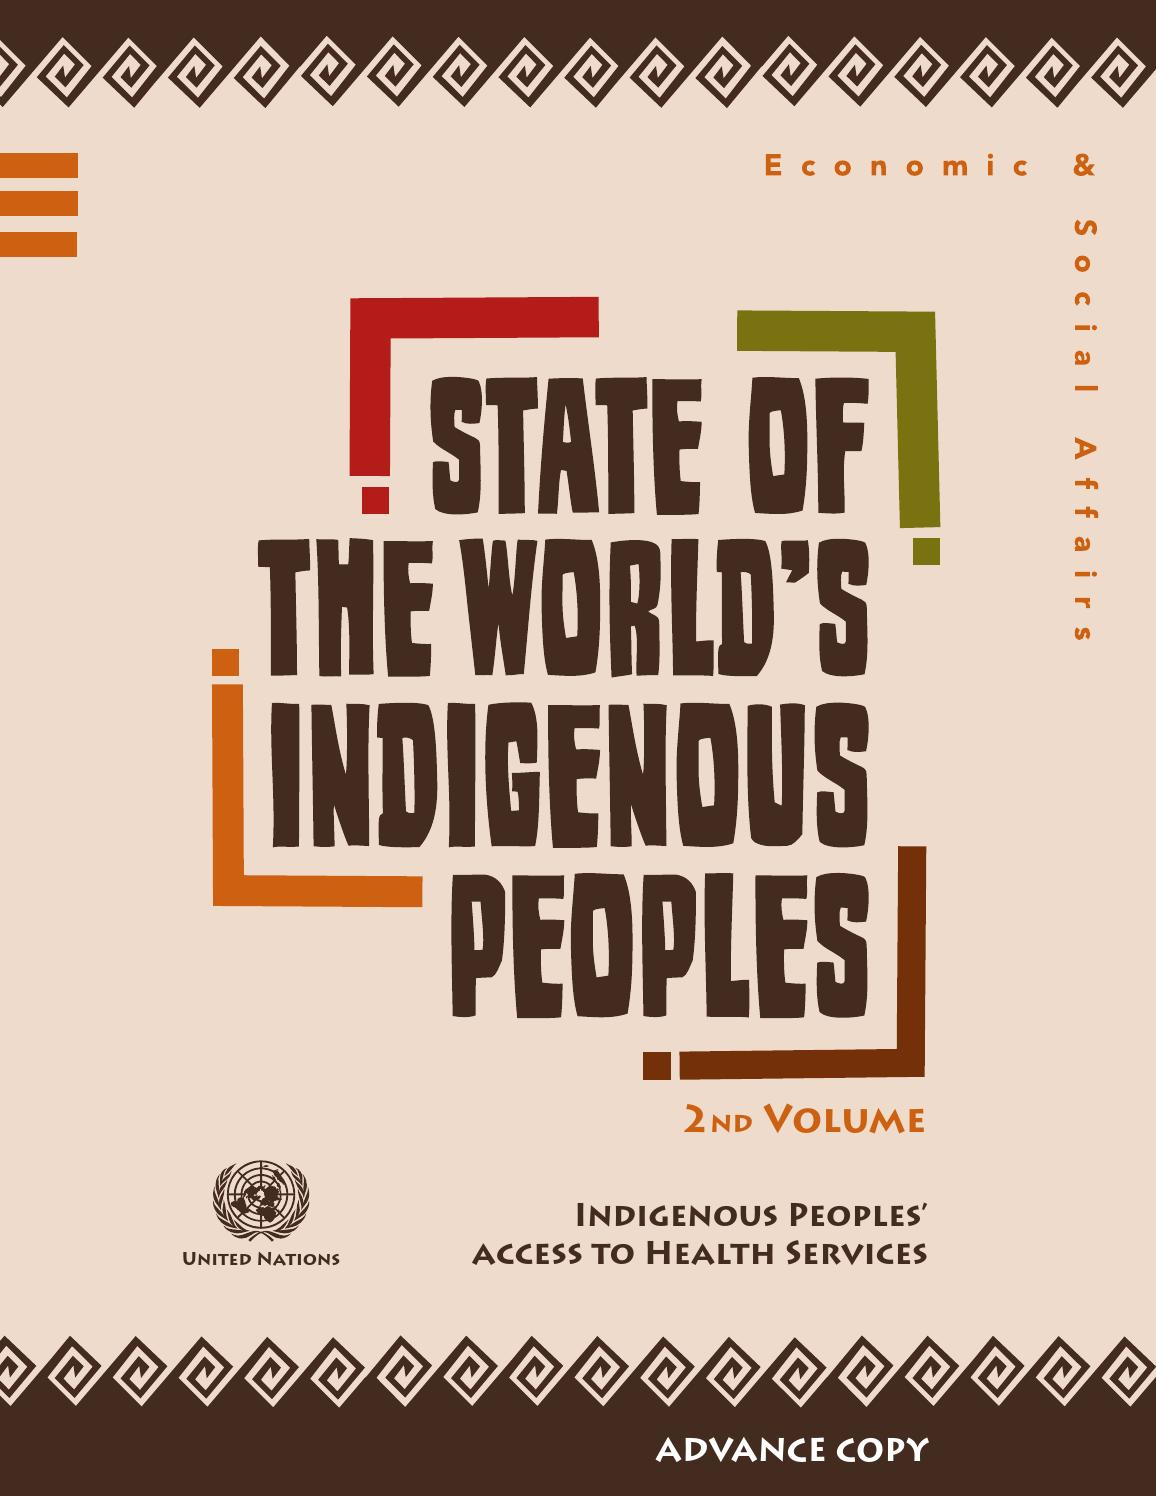 State Of The World's Indigenous Peoples 2 V.jpg